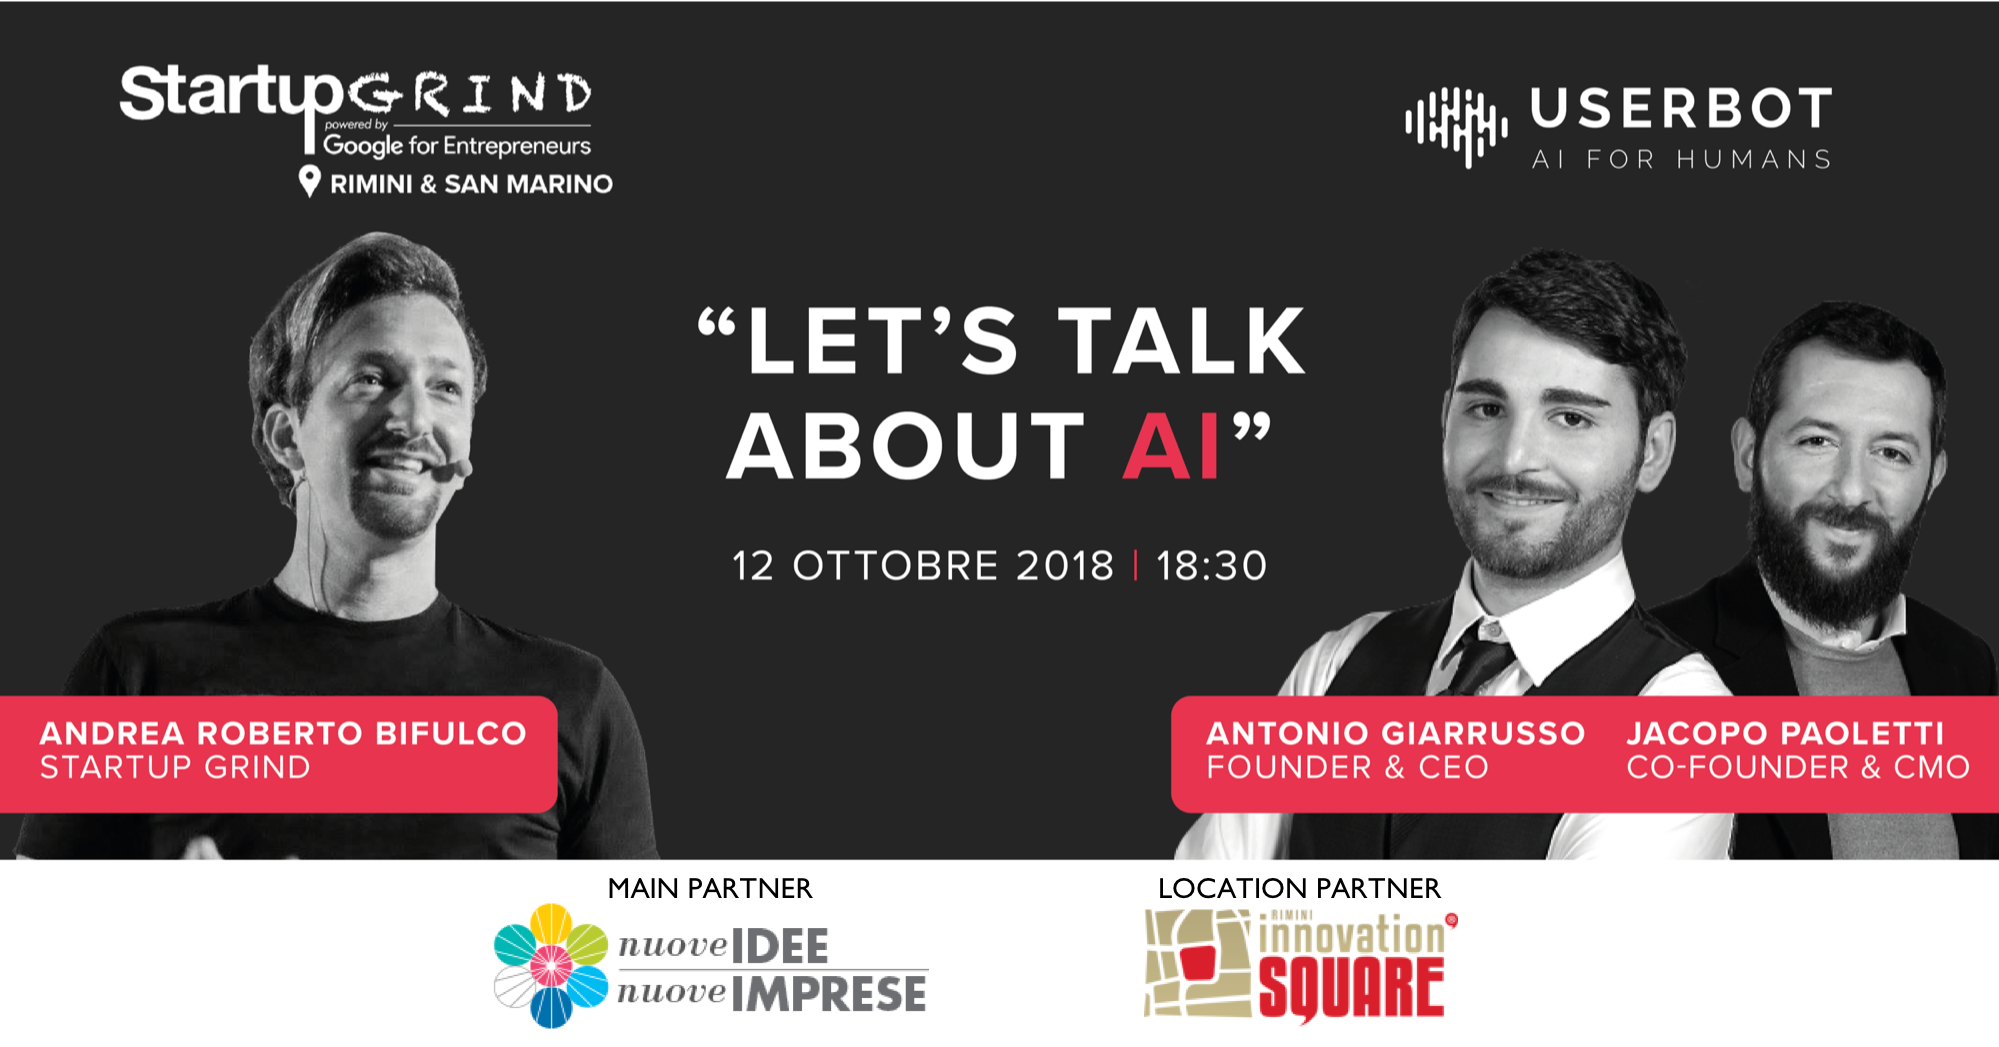 12 ottobre Startup Grind: intelligenza artificiale? Ne parliamo con Userbot a Rimini Innovation Square